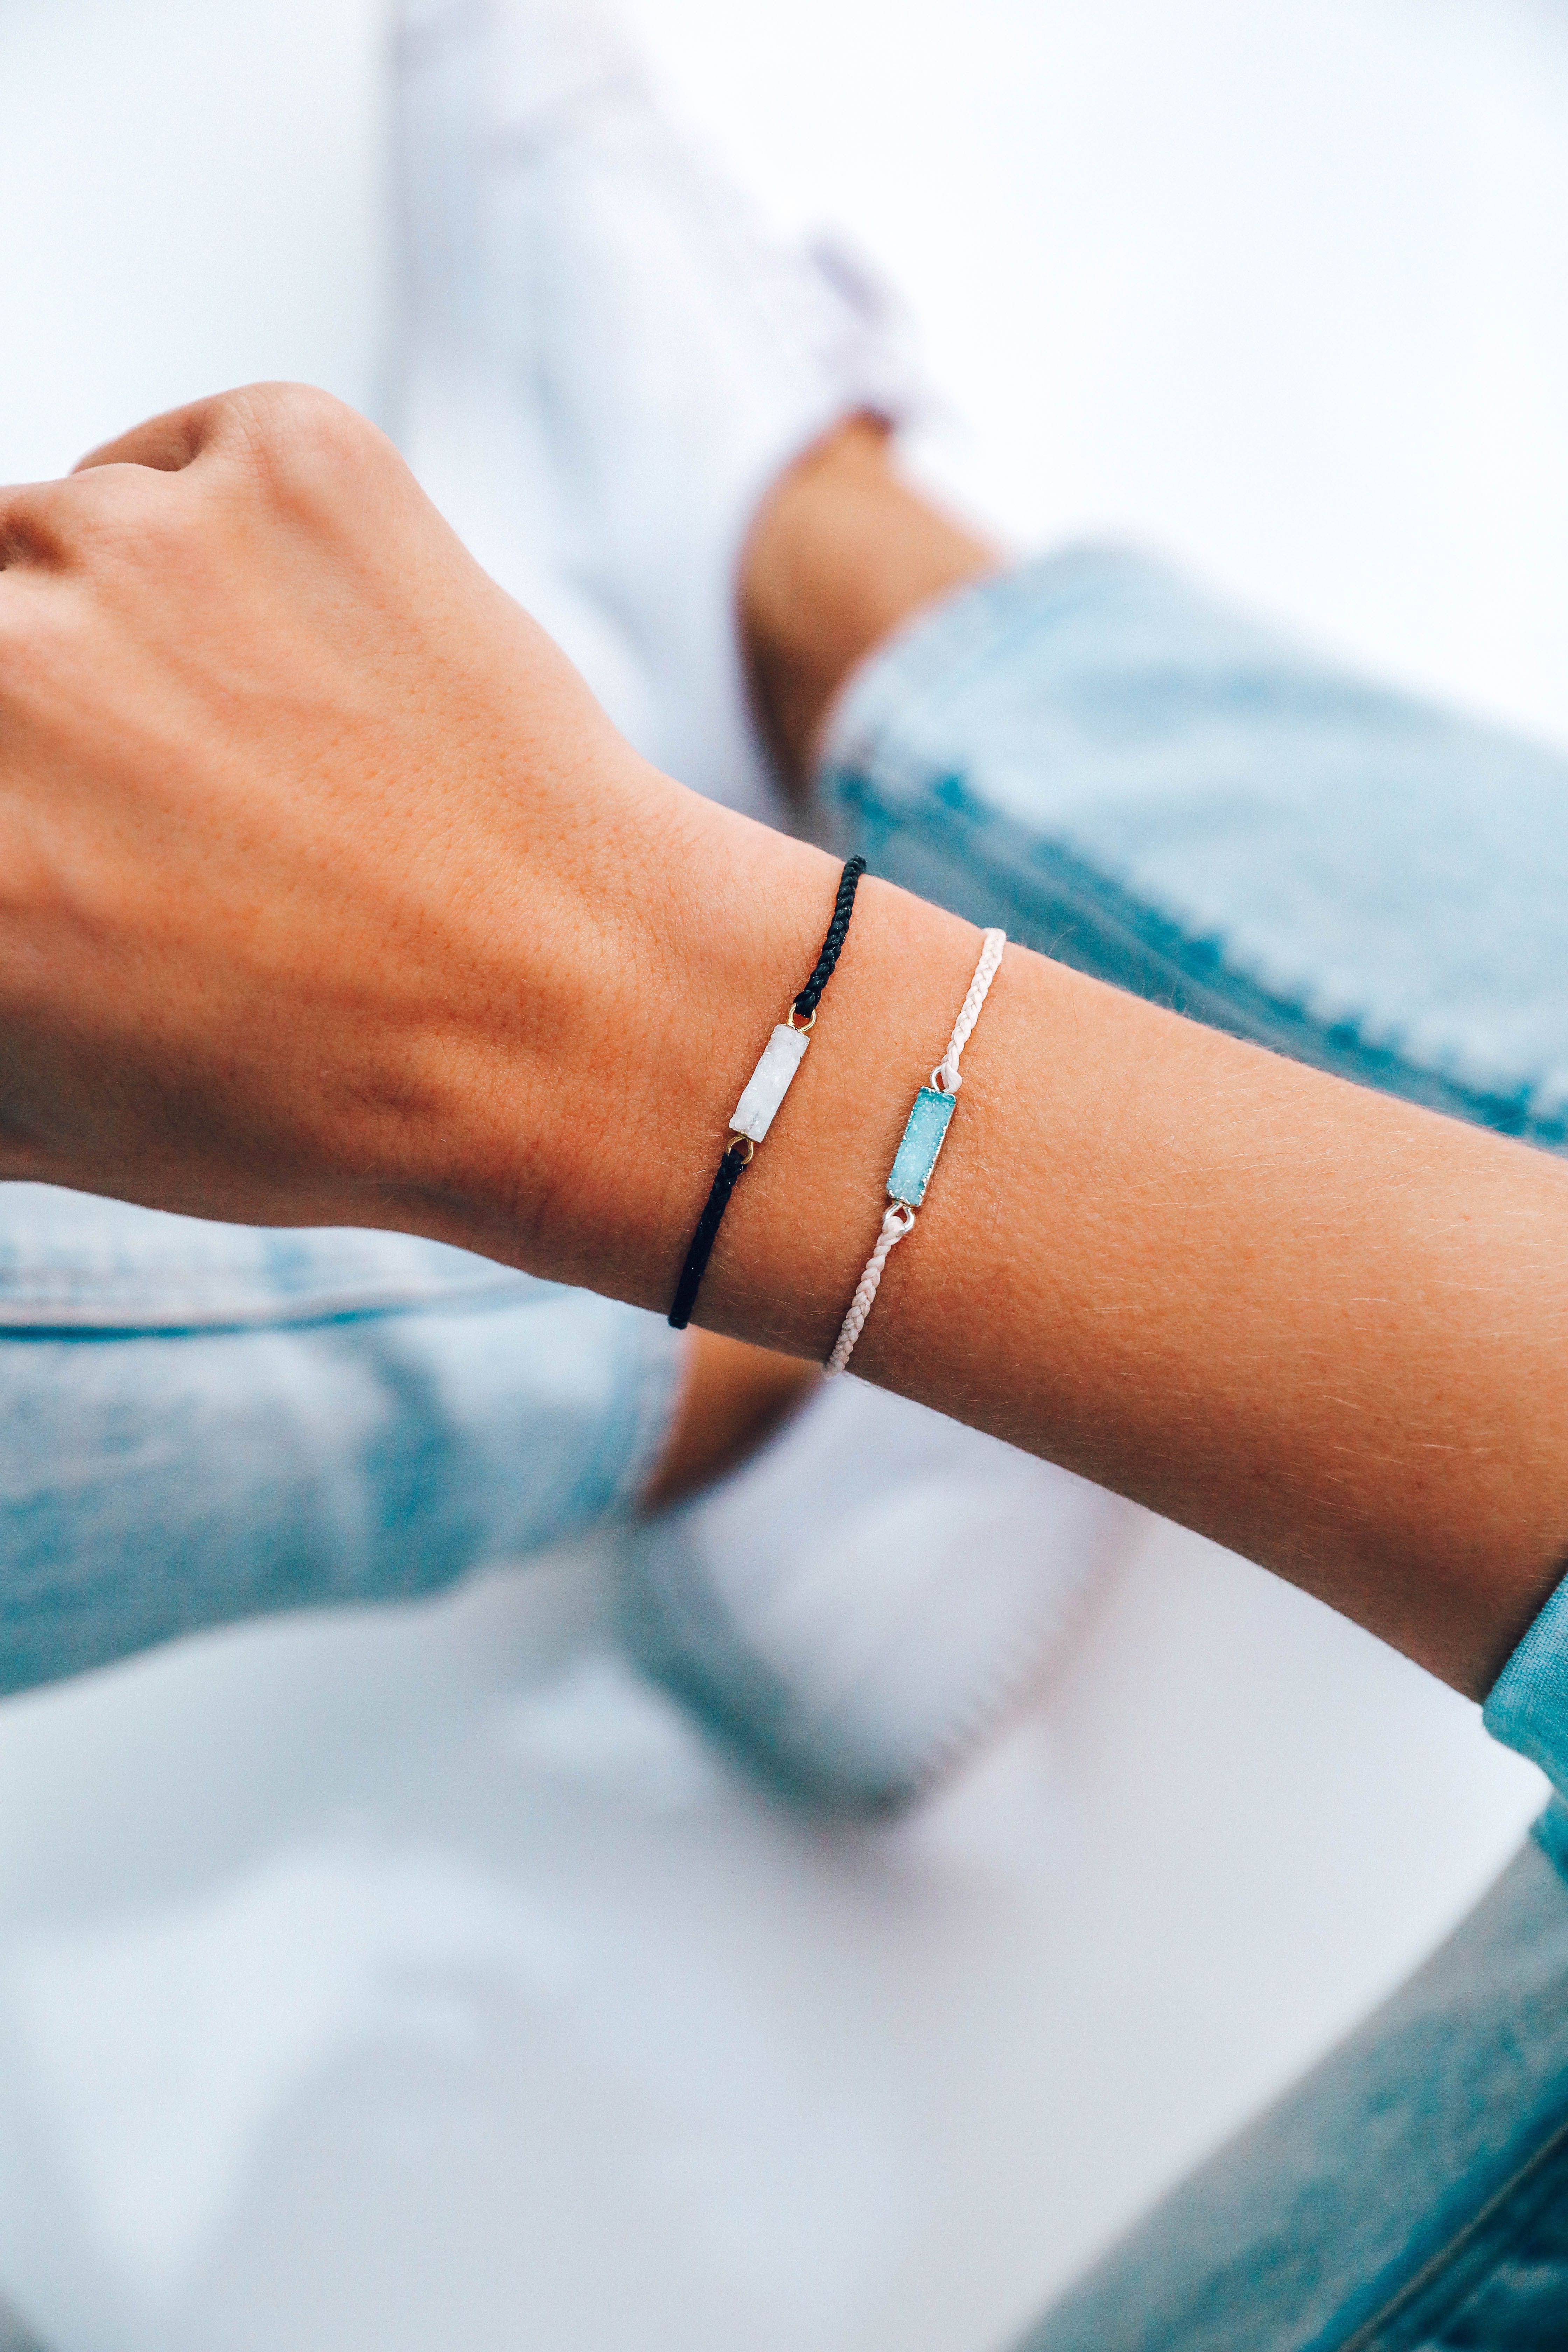 Add A Touch Of Elegance To Any Outfit With Our New Druzy Bracelet Featuring A Rectangular Druzy Charm And A In 2020 Summer Bracelets Pura Vida Bracelets Cute Jewelry